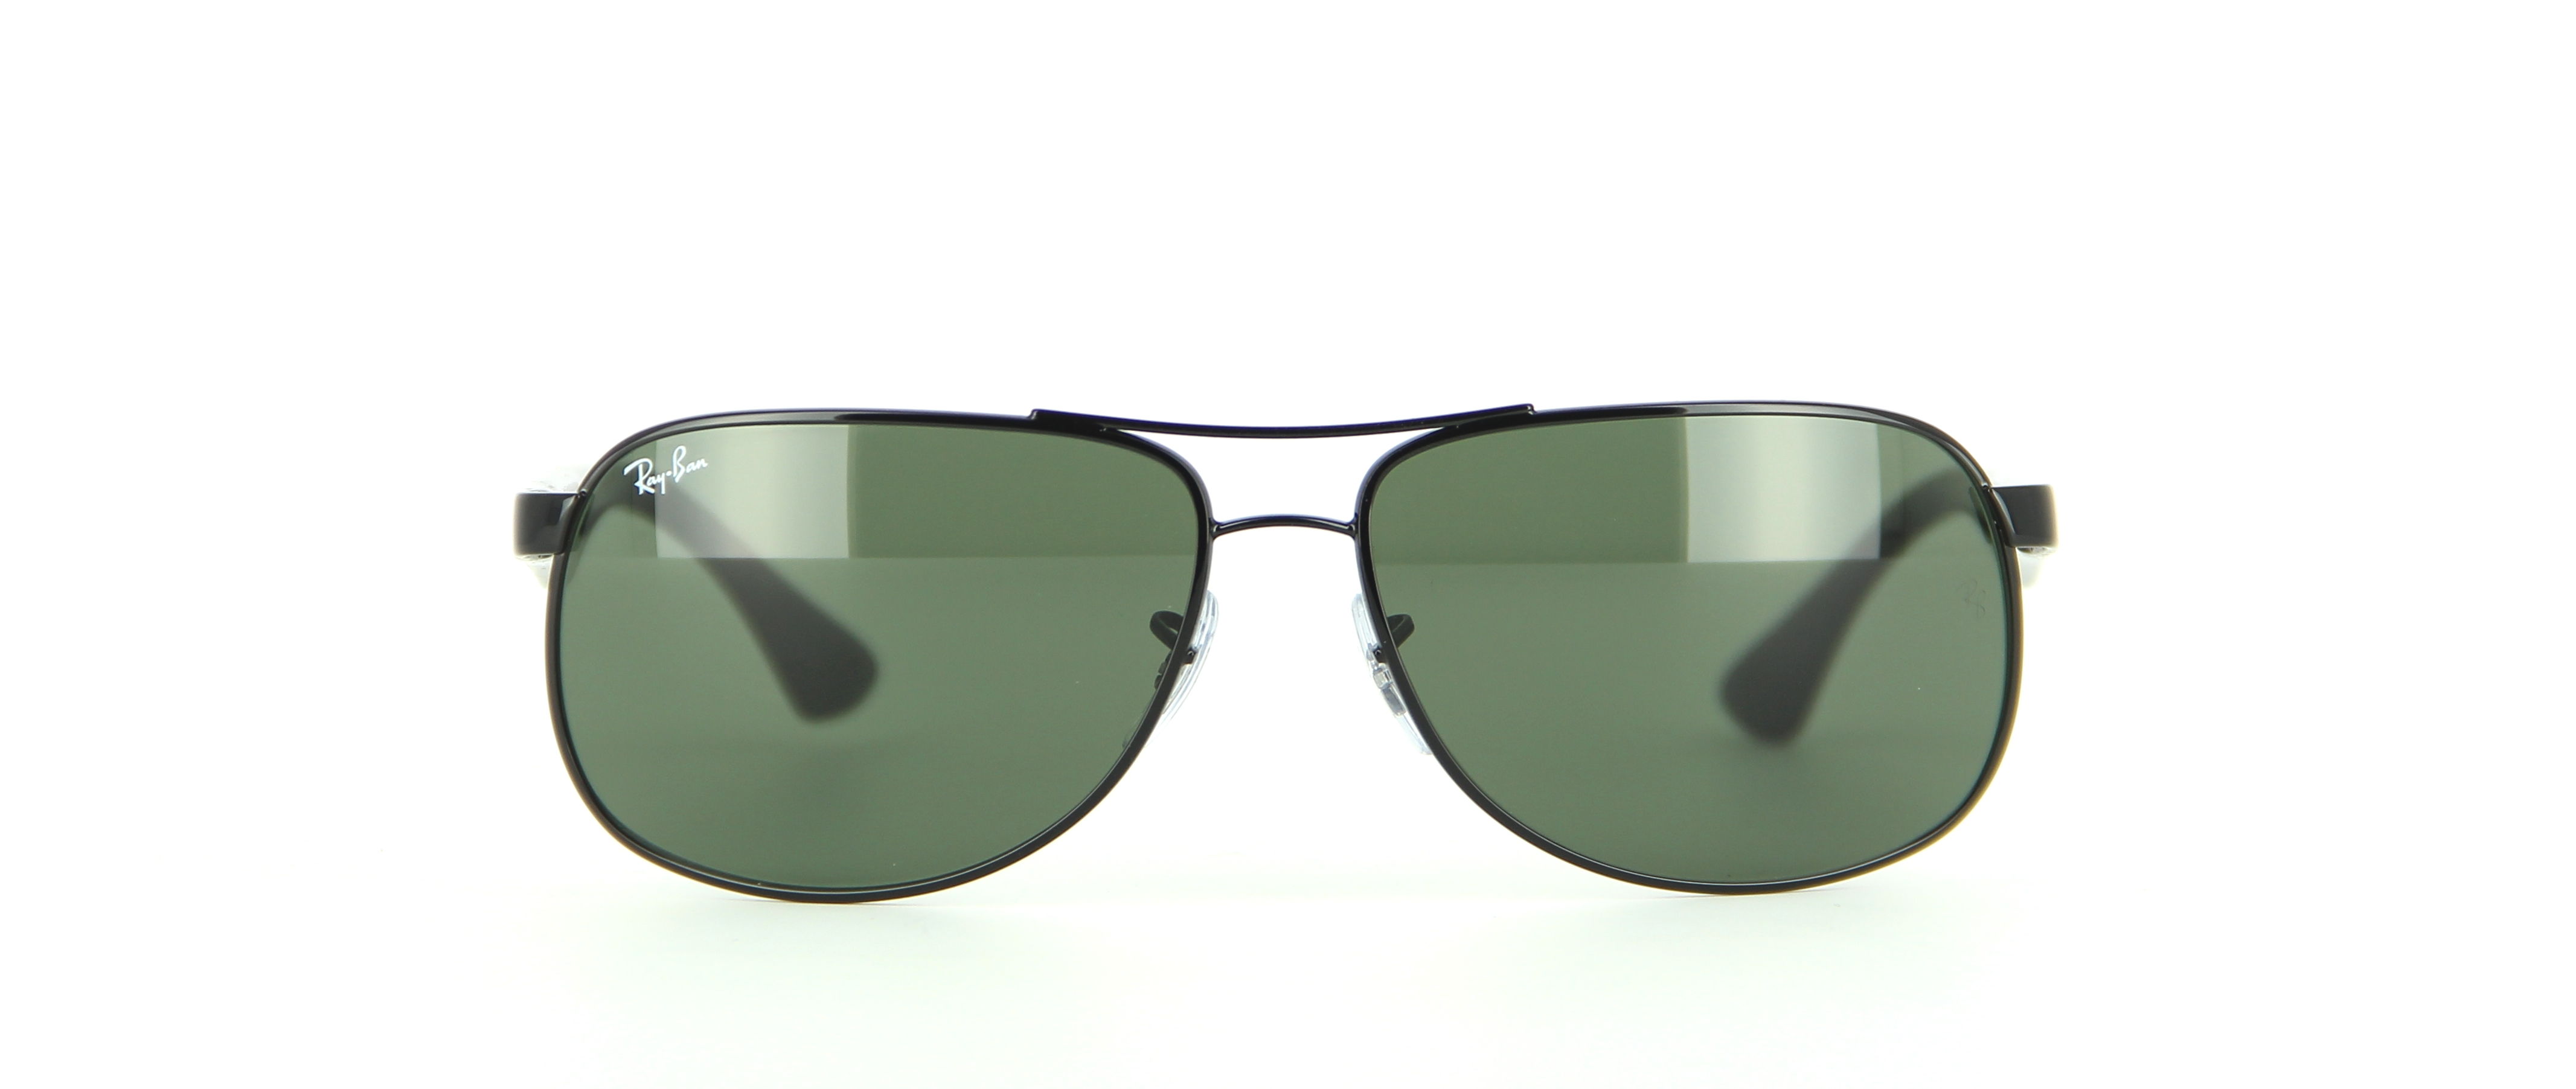 82c59a1a42c Why Ray Bans Are So Expensive